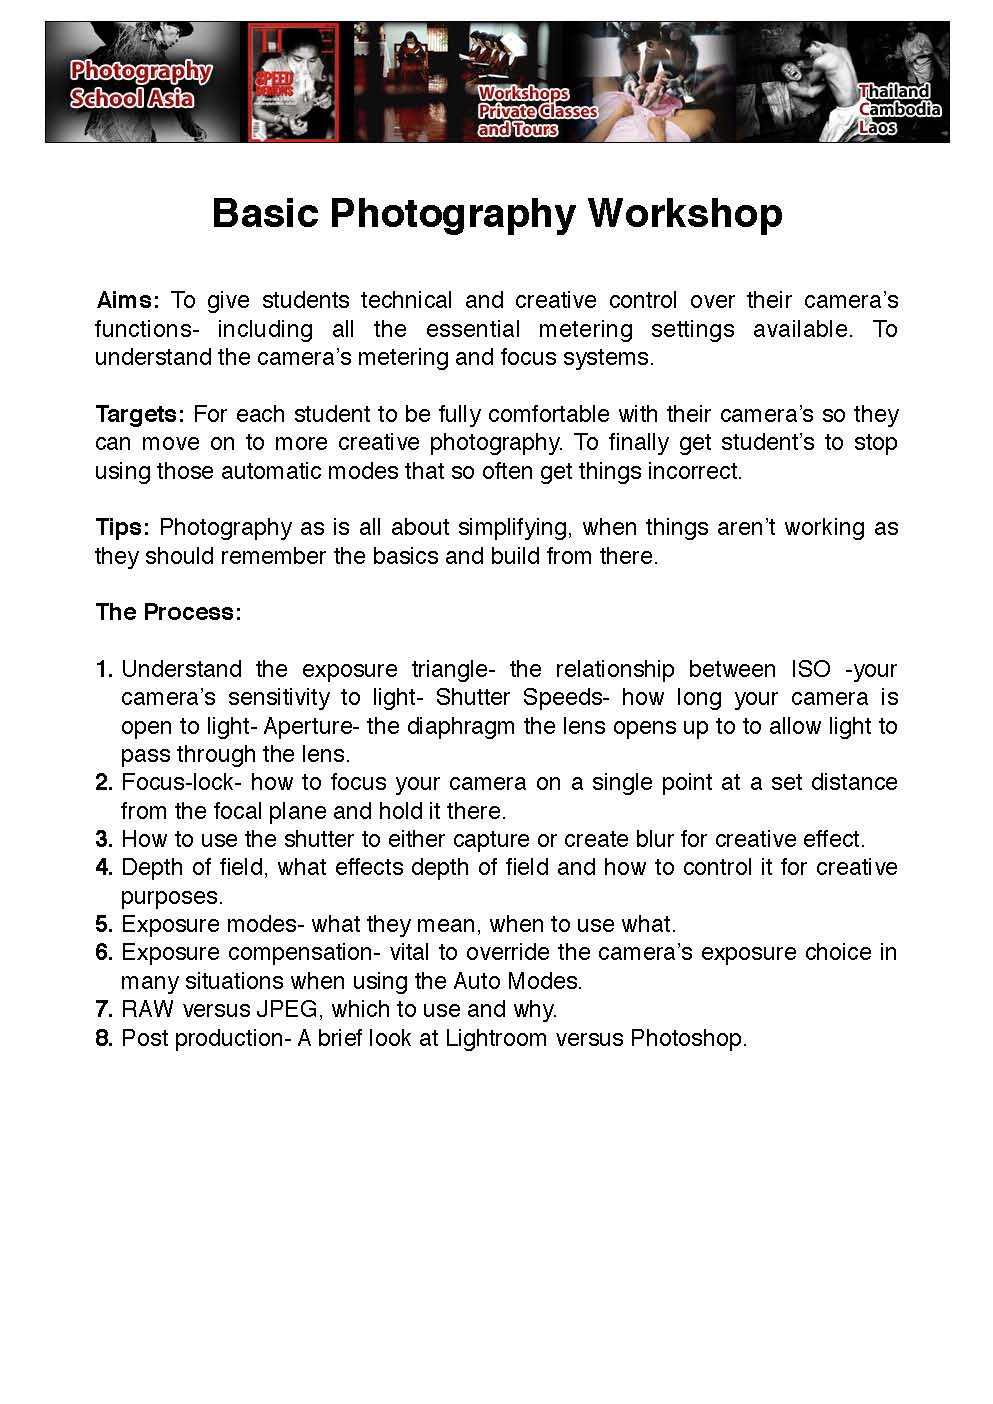 The first sheet of my workshop on essential photography basics.